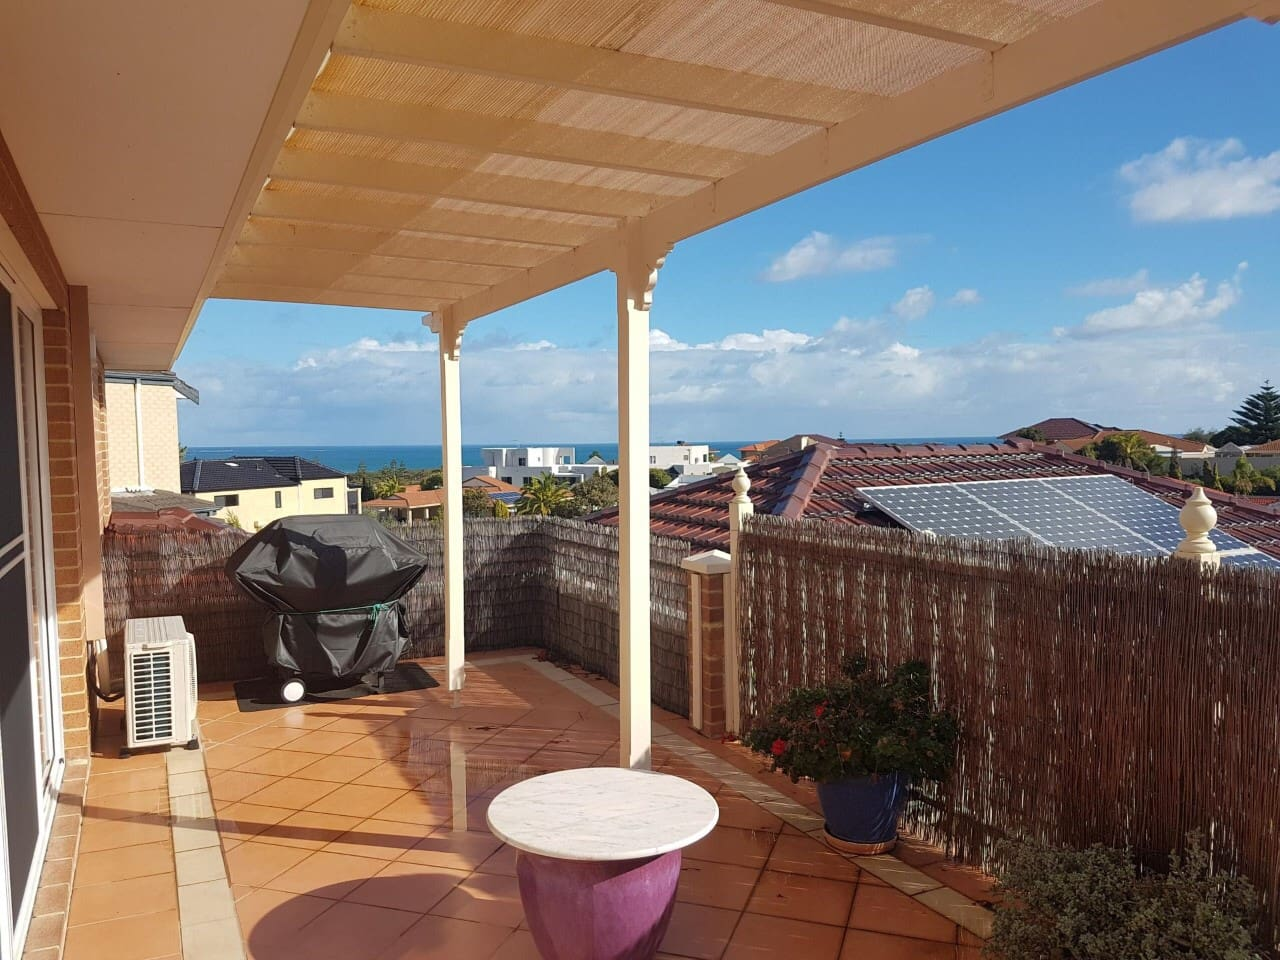 Balcony with sea views, enjoy a barbecue, or breakfast with views to Rottnest